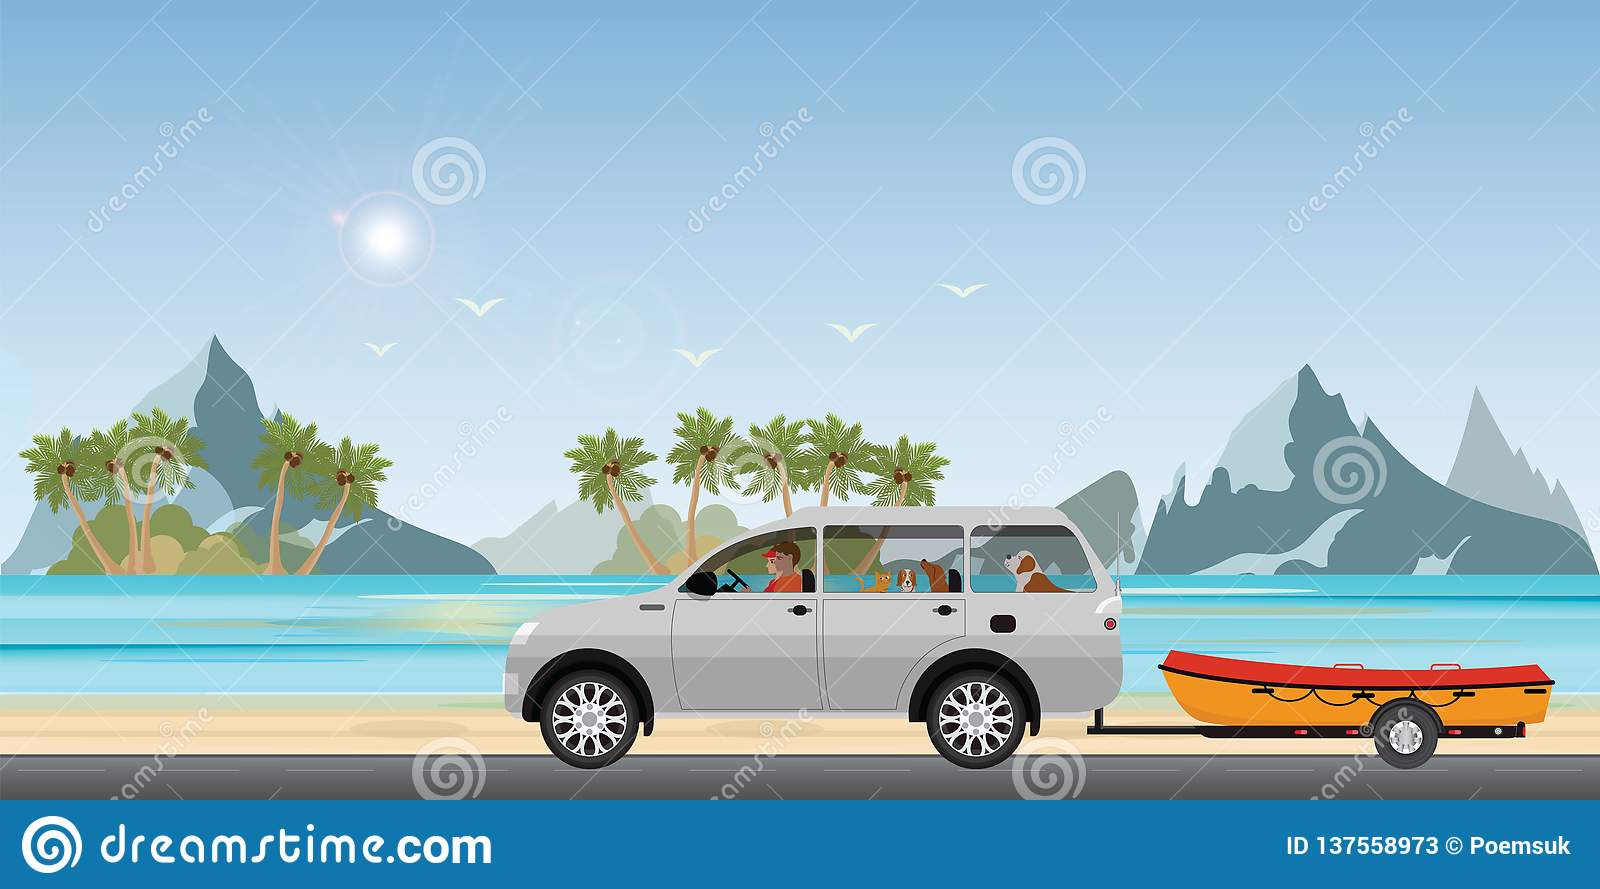 Boat towing car on road running along the sea coast